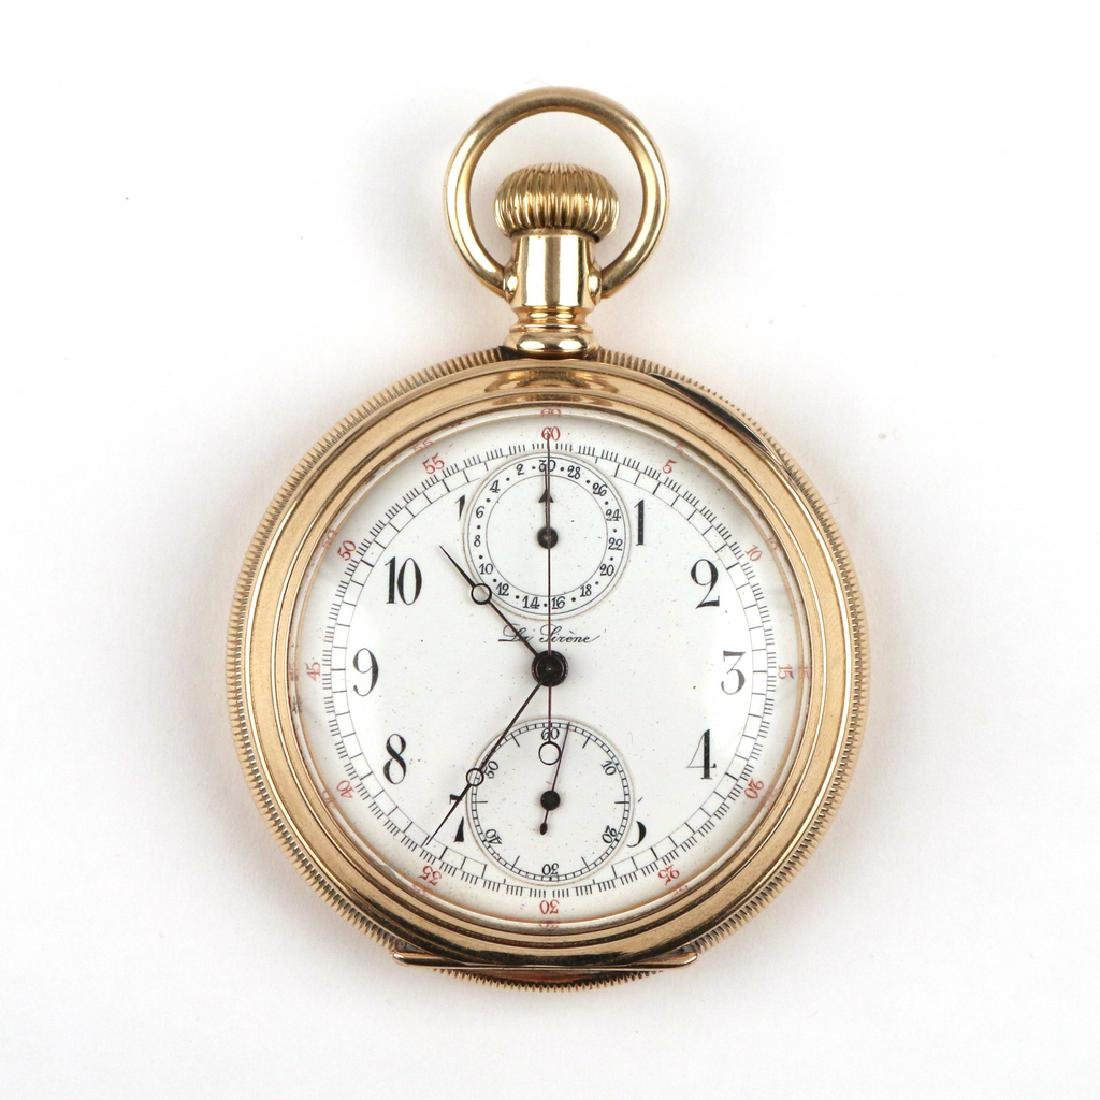 SWISS 'LA SIRENE' GOLD CHRONOGRAPH POCKETWATCH